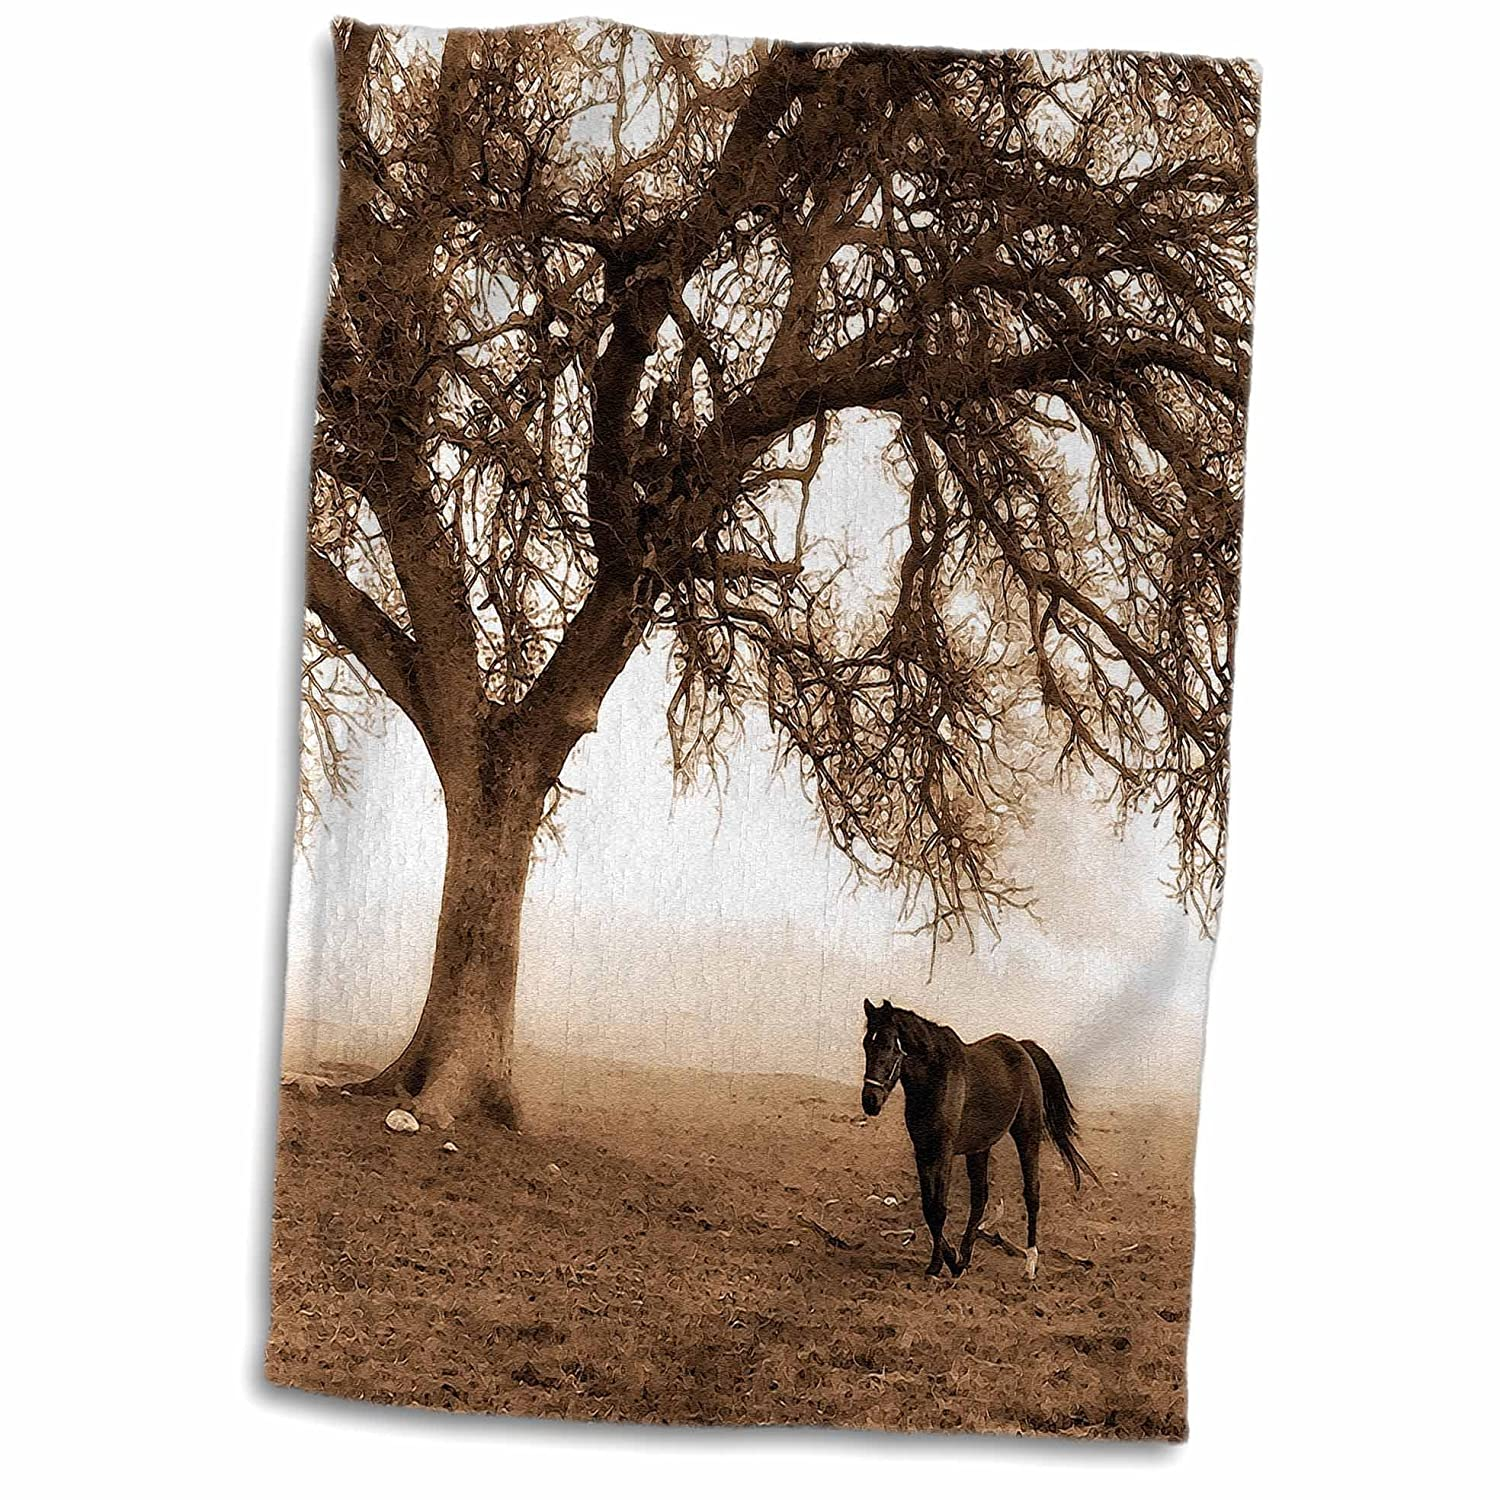 Multicolor 15 x 22 3D Rose Western Sepia Toned Horse on a Ranch with an Oak Tree TWL/_202972/_1 Towel